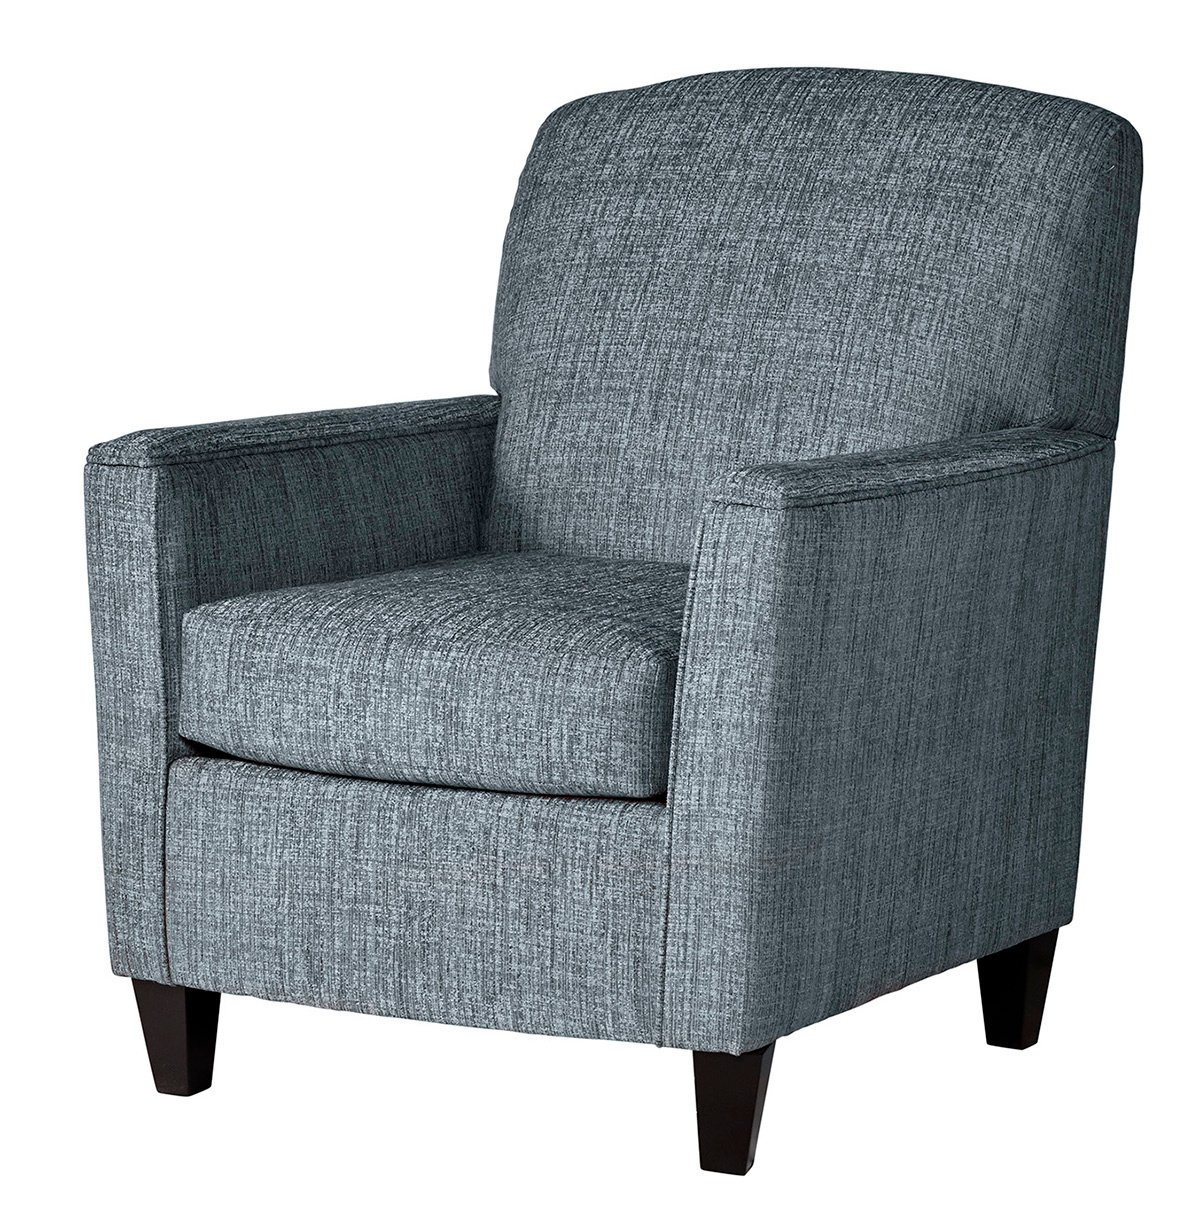 35FOTE Serta Accent Chair